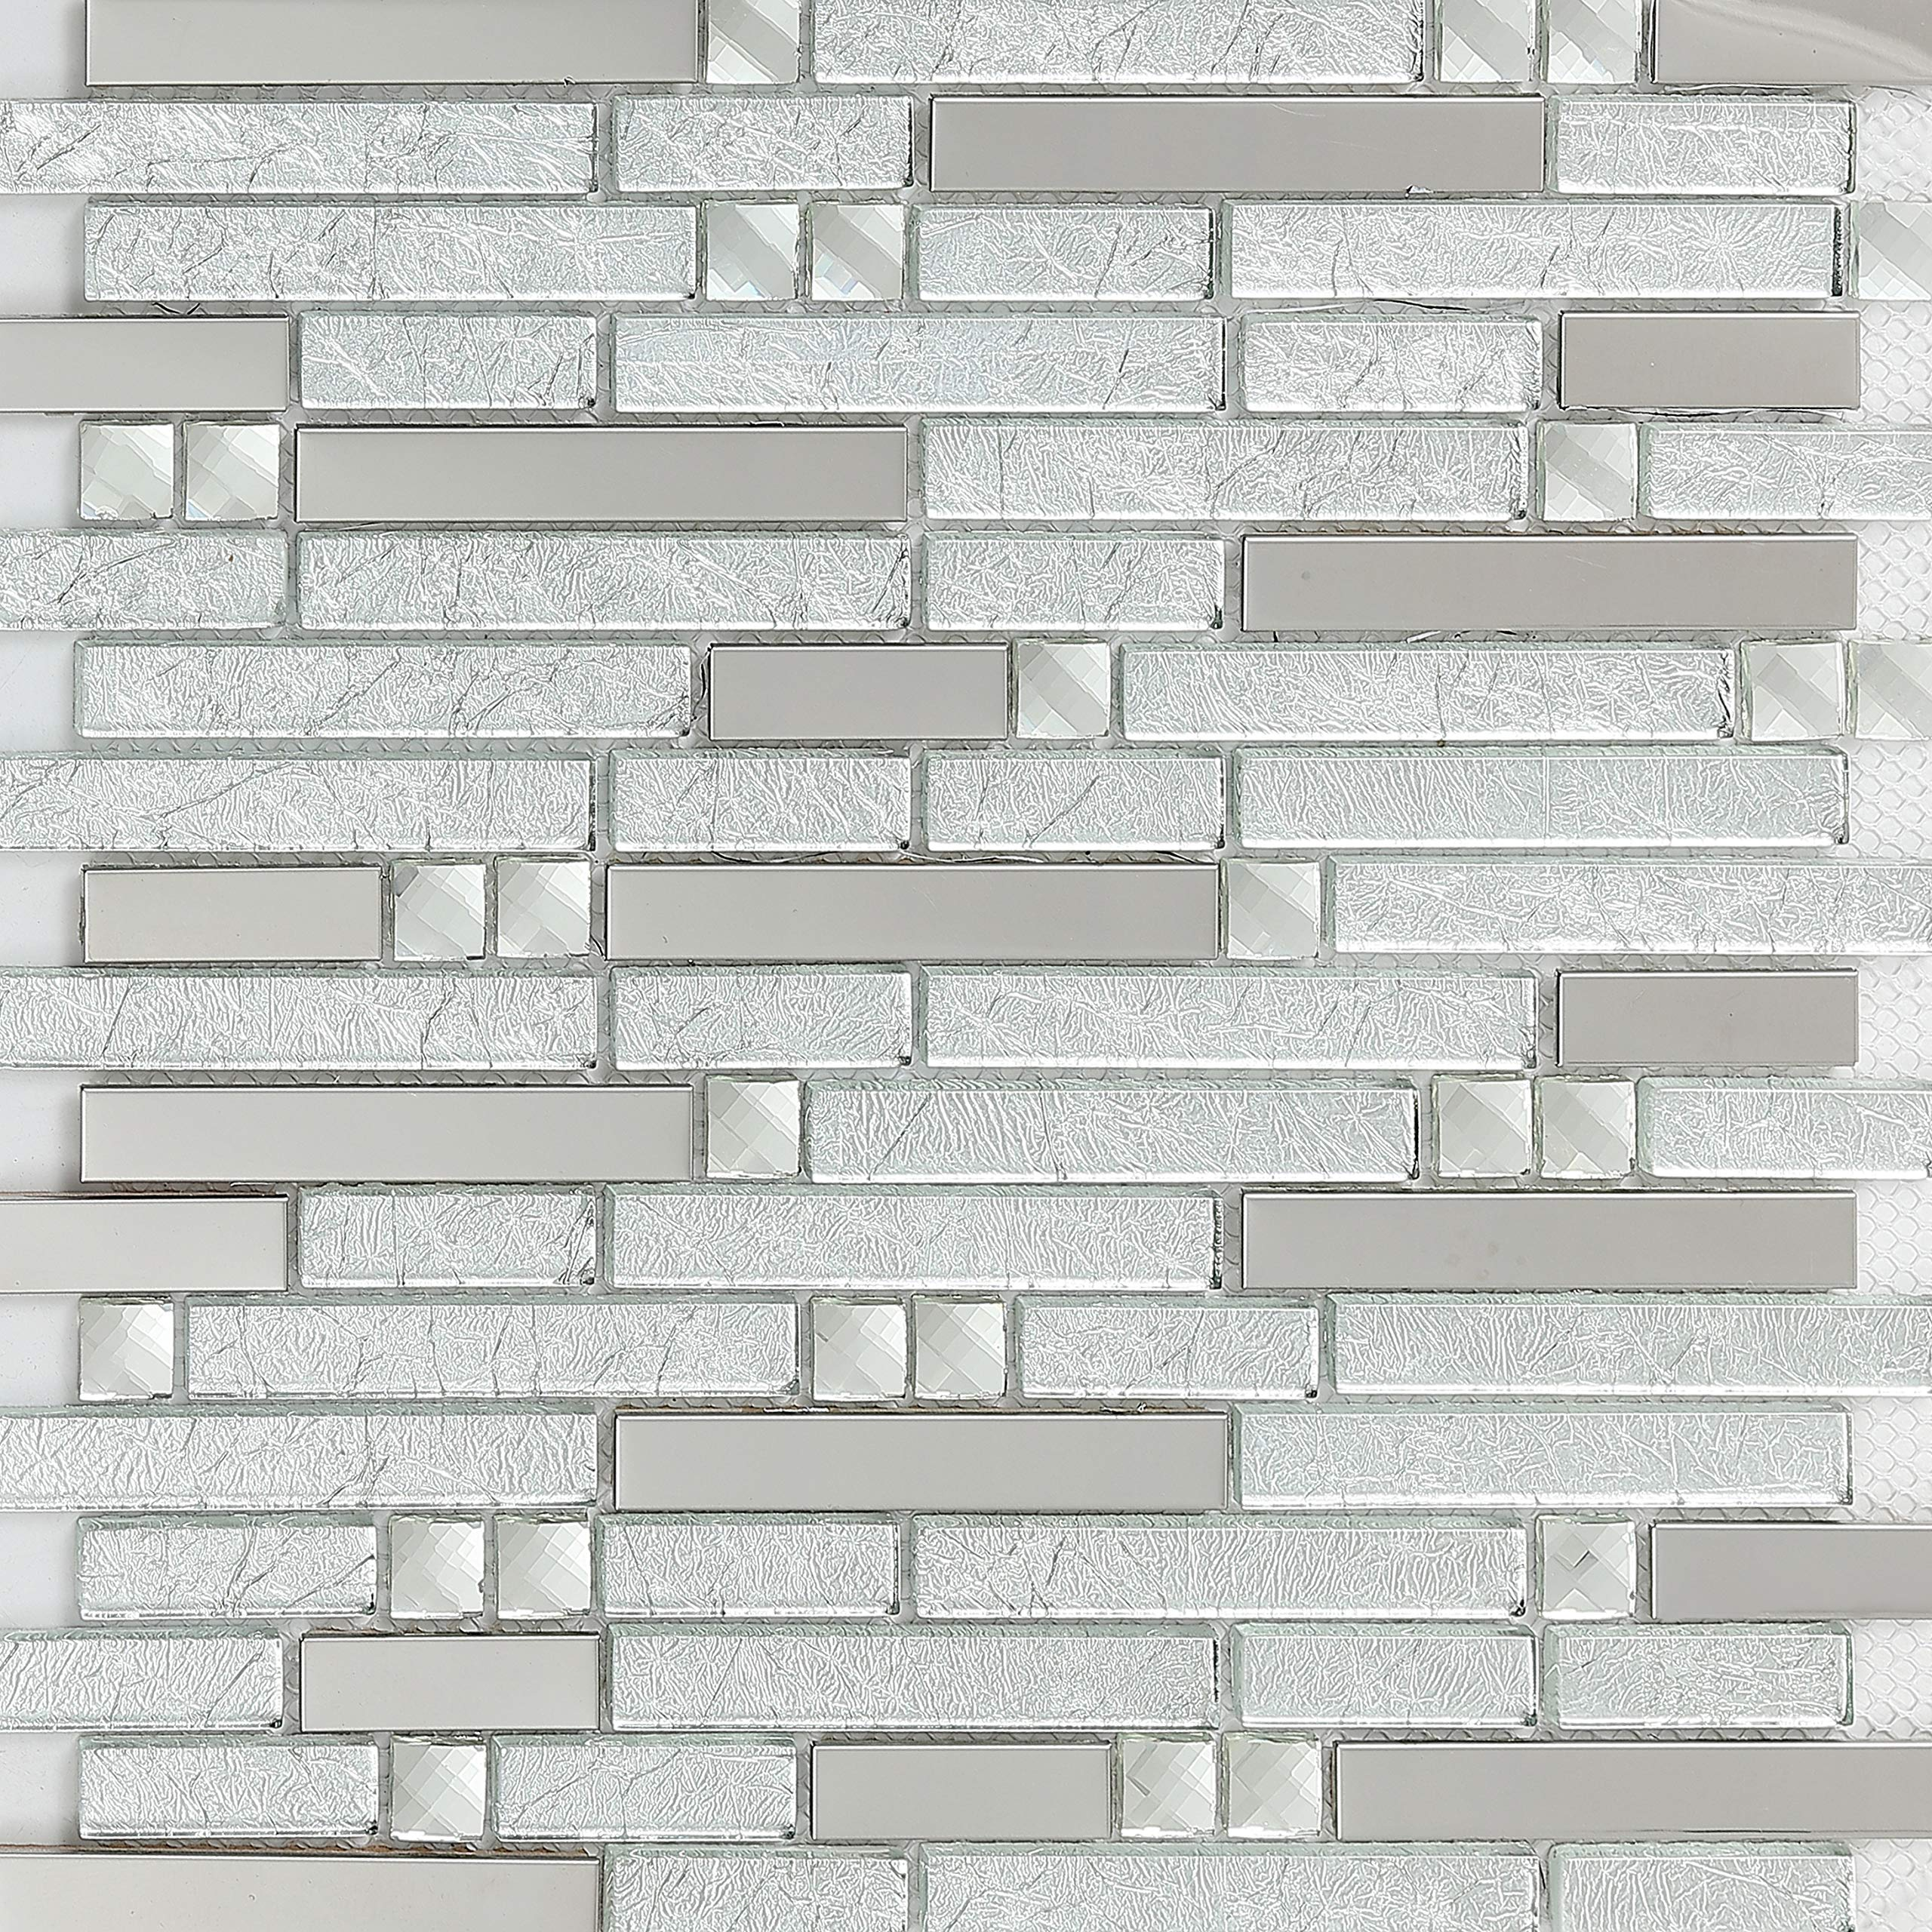 Hominter 11-Sheets Silver Stainless Steel and Clear Glass Tile, Crystal Rhinestone Mosaic, Random Interlocking Patterns for Kitchen/Bathroom/Accent Wall YG002